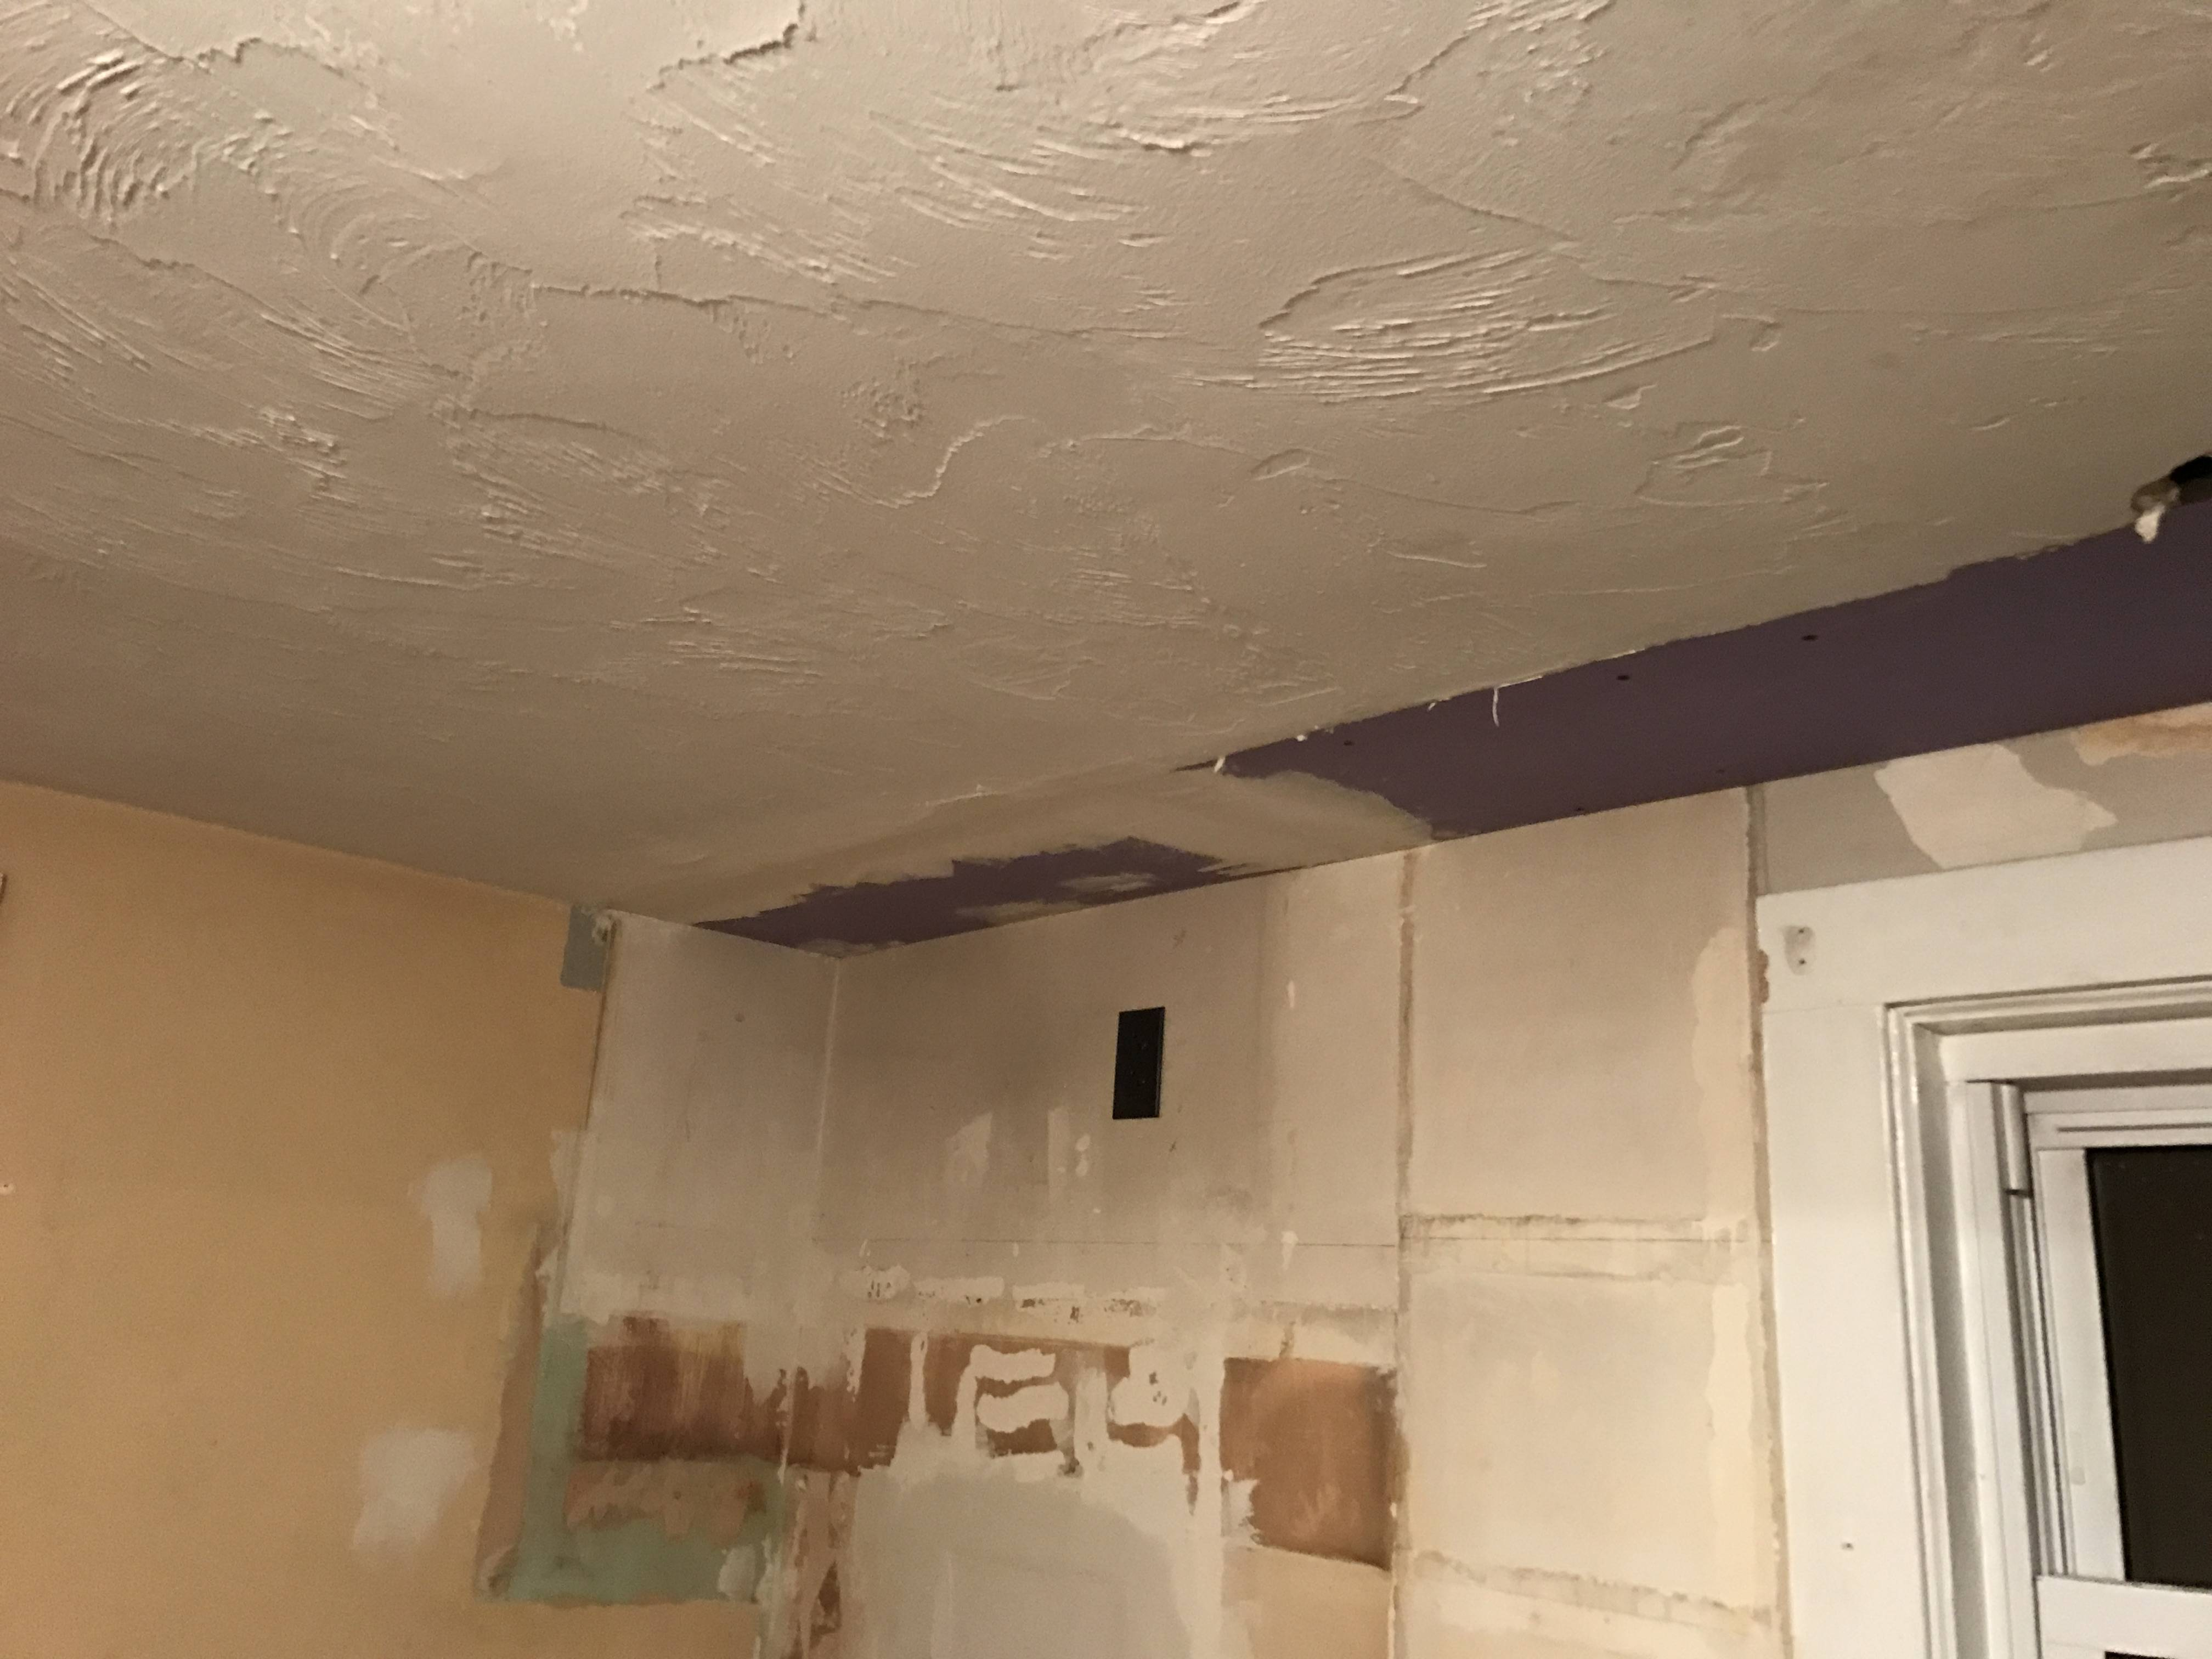 How to handle joint between uneven ceiling drywall?